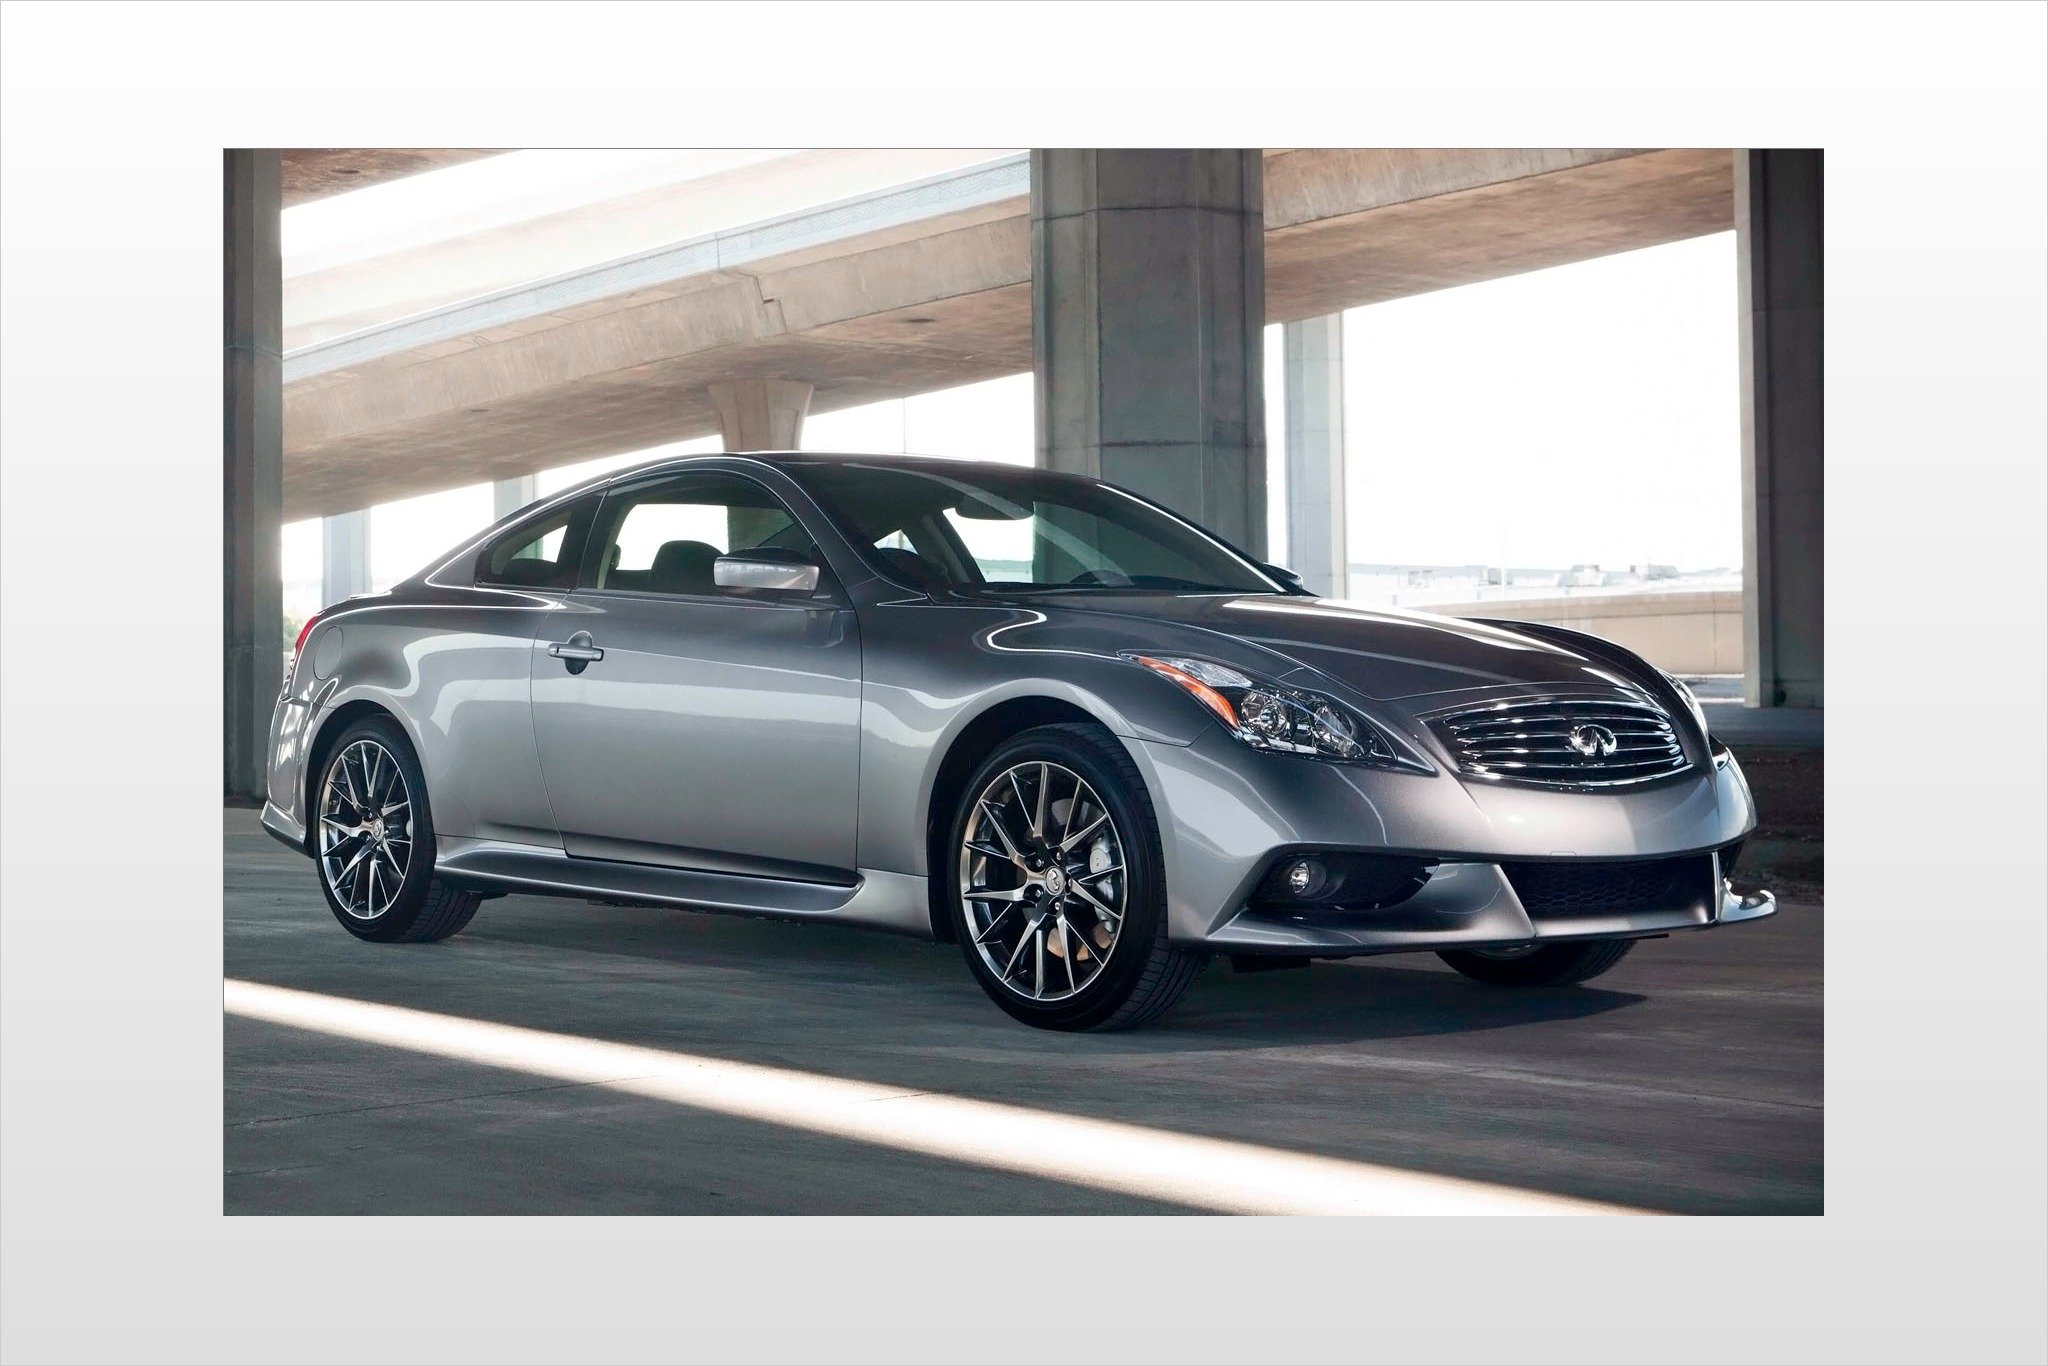 2013 infiniti g coupe coupe ipl fq oem 3 2048